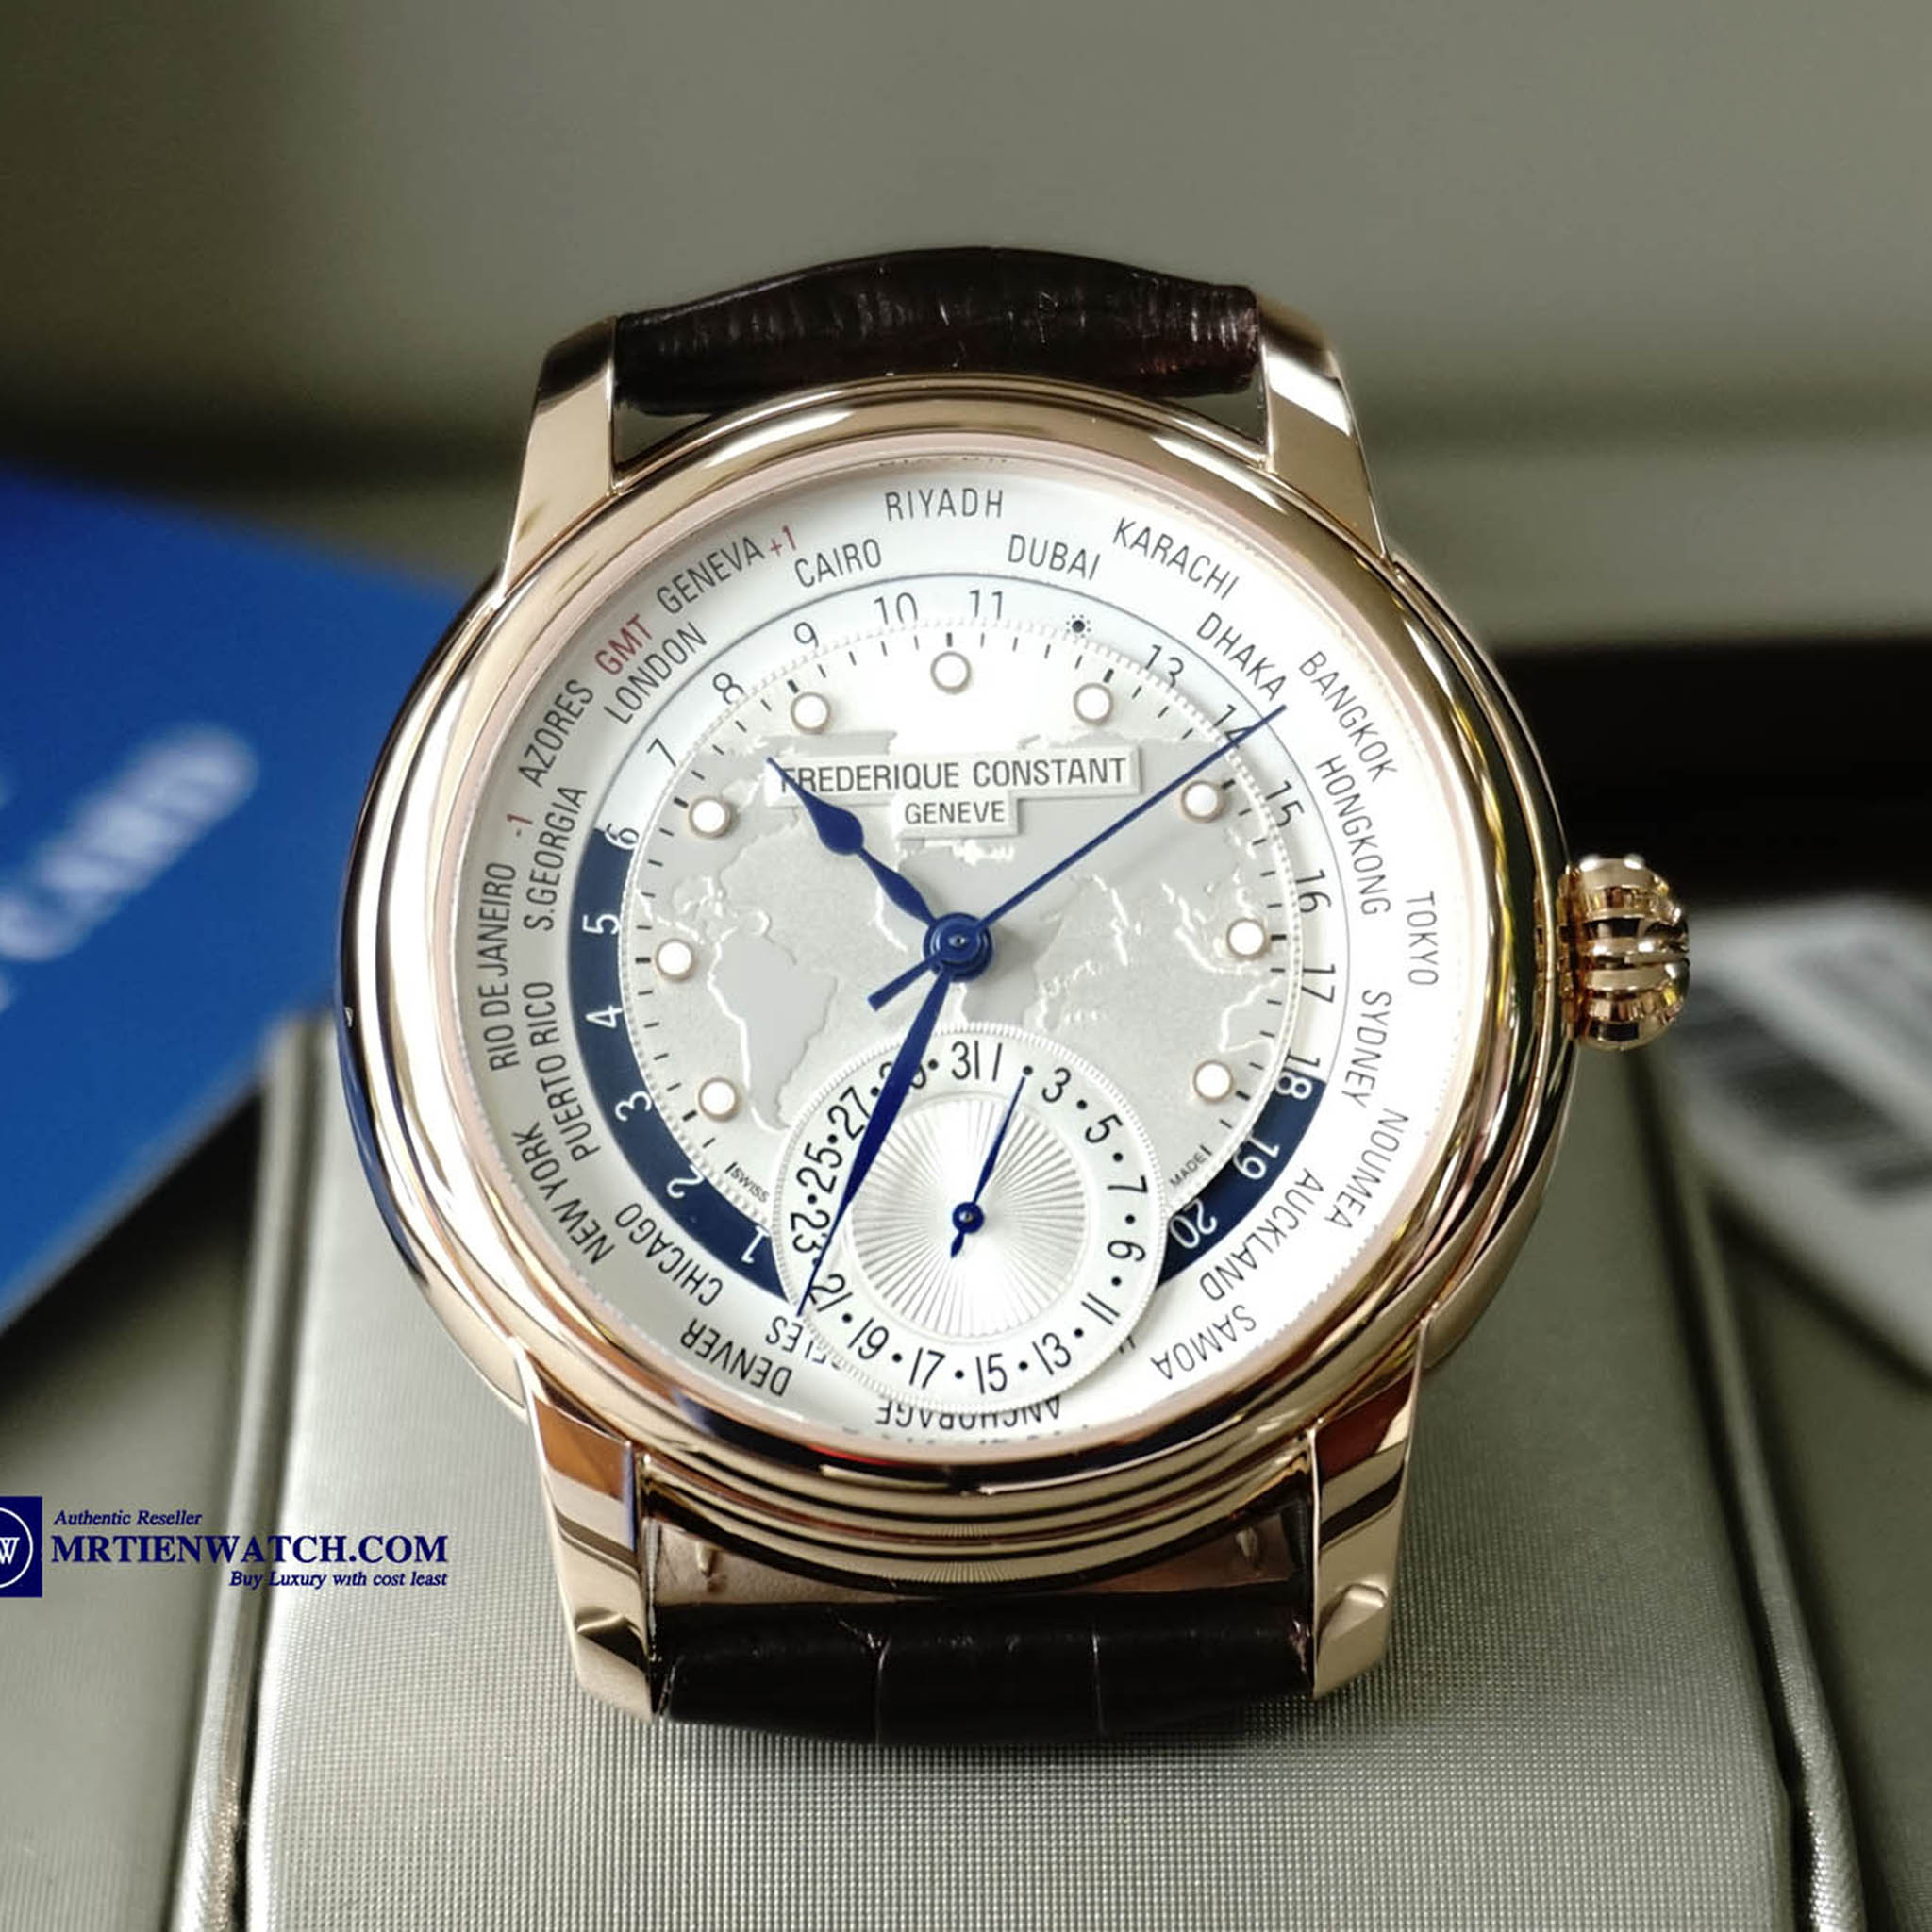 FREDERIQUE CONSTANT MANUFACTURE WORLDTIMER ROSE GOLD PLATED BLUE HANDS LEATHER STRAPS FC-718WM4H4 - Thép không rỉ bọc vàng đồng (Rose Gold Plated)